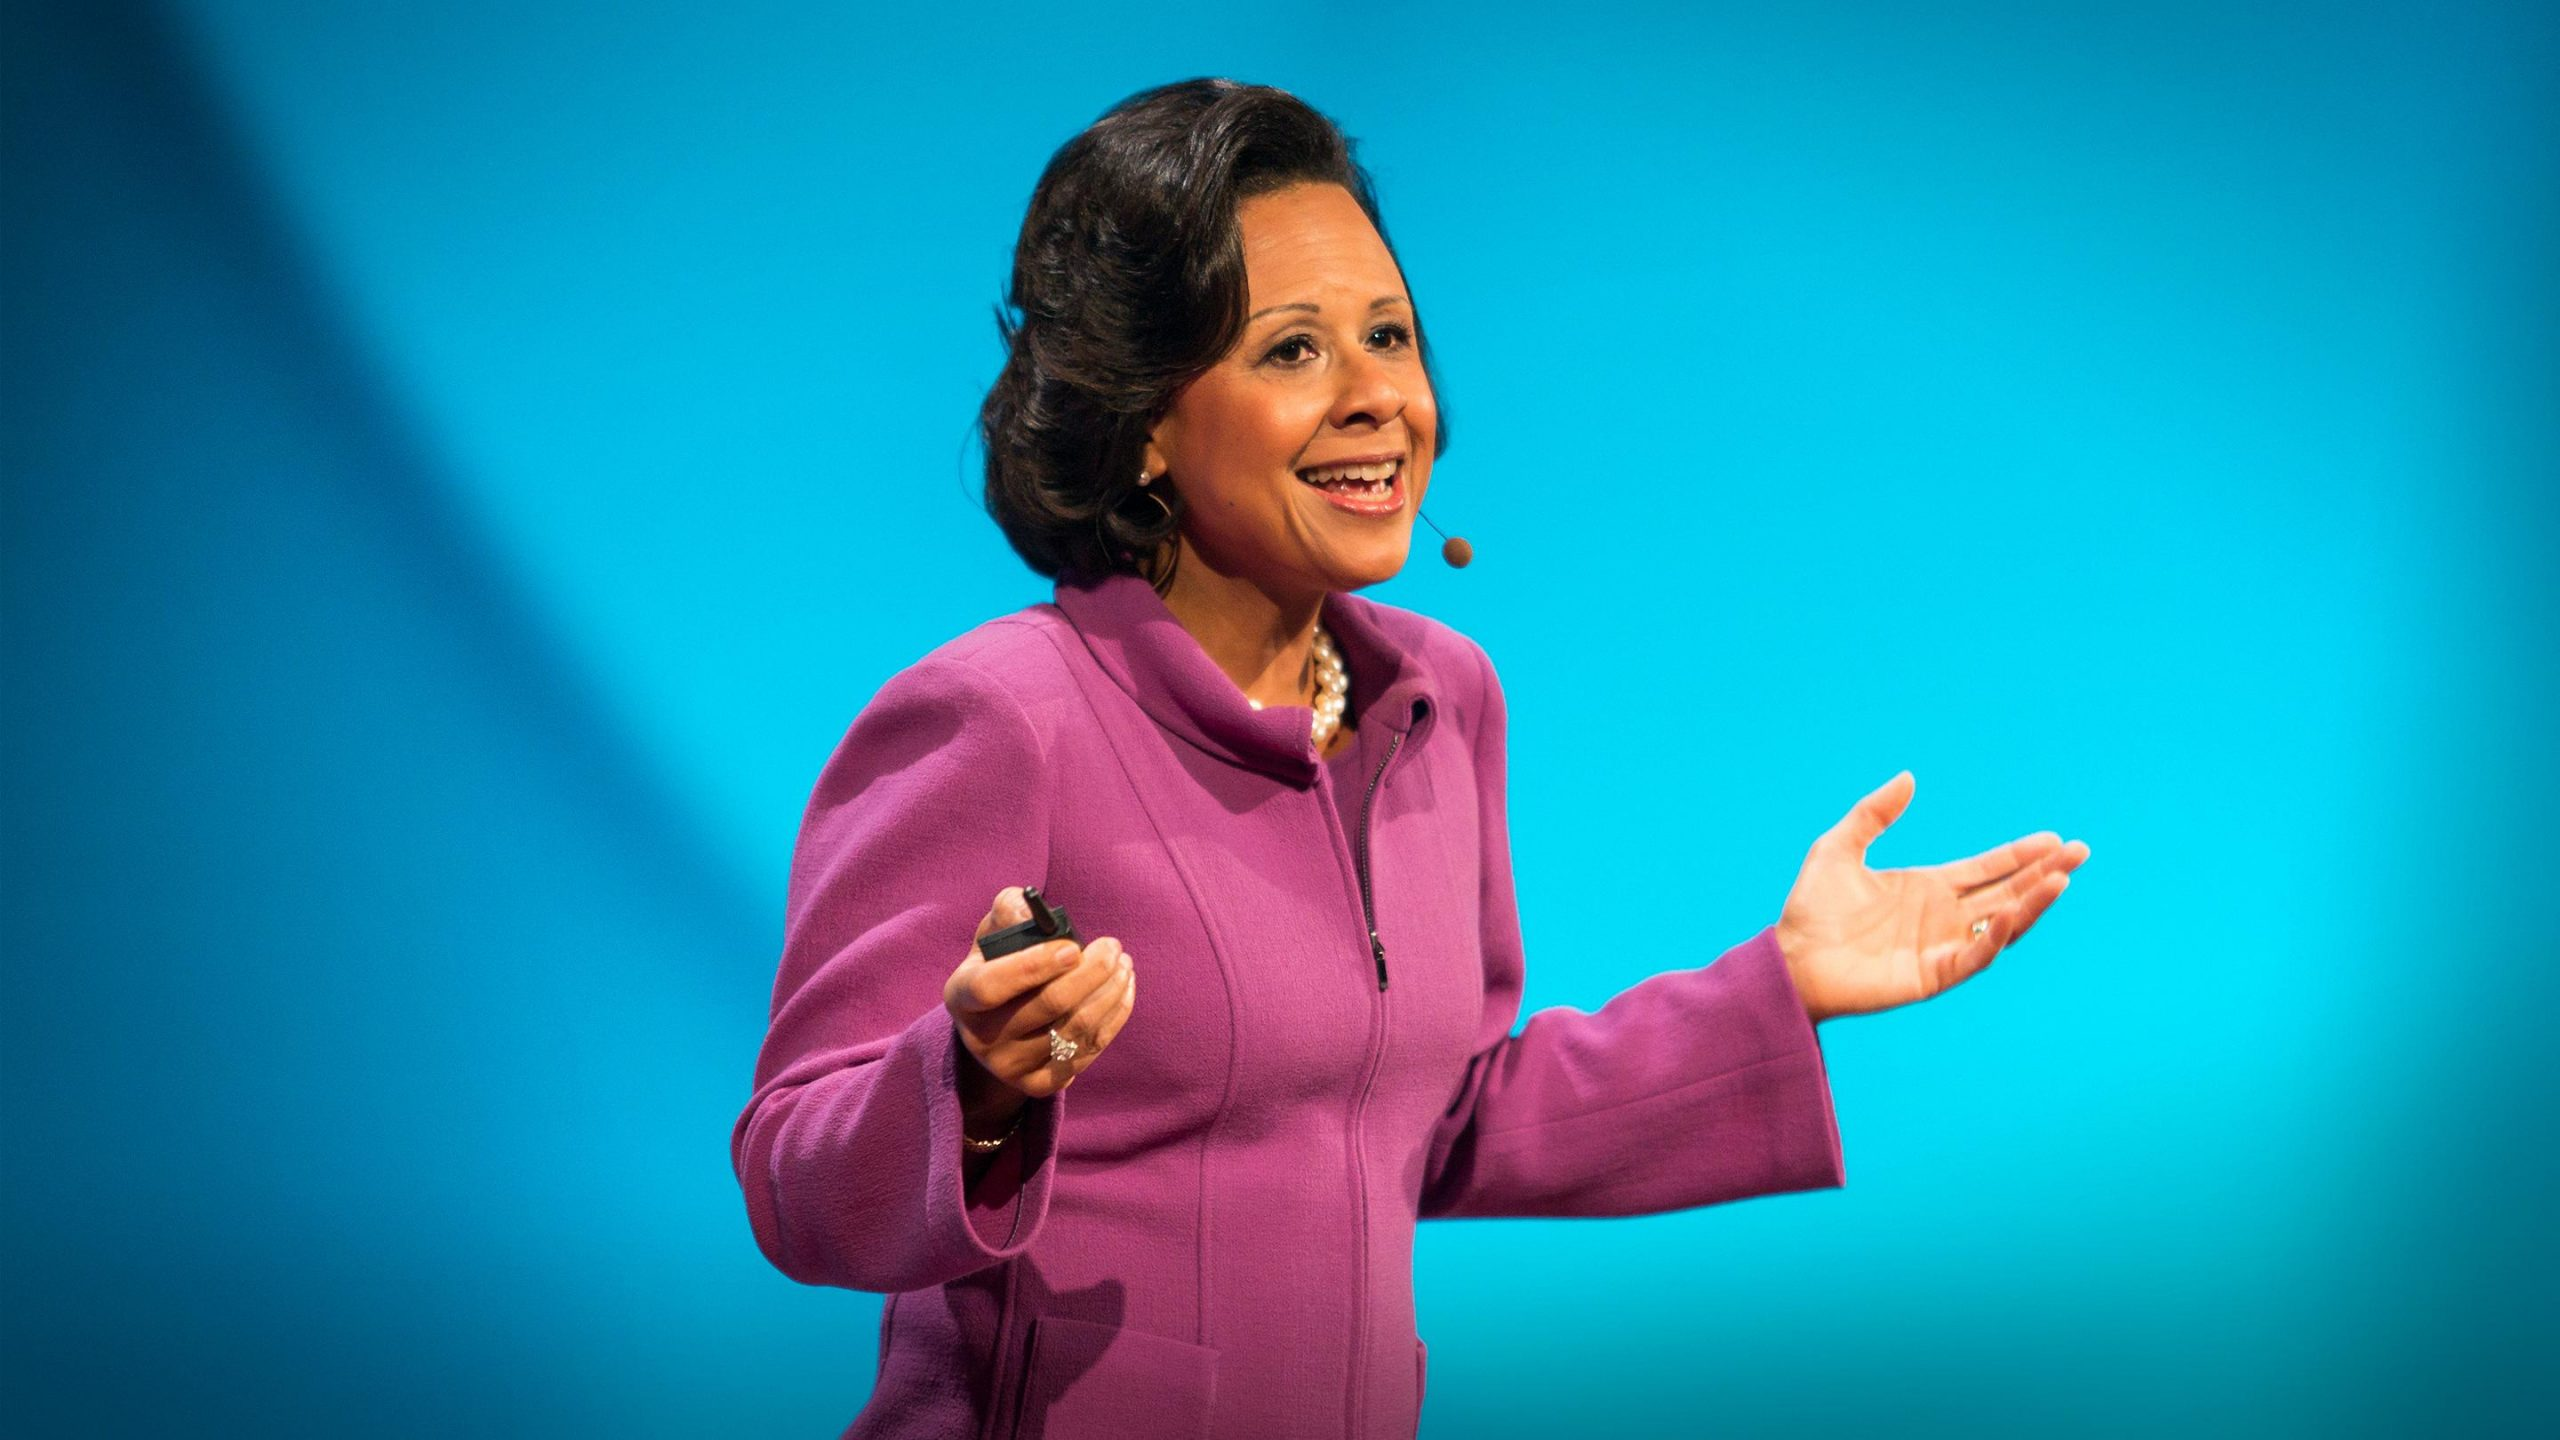 paula-johnson:-6-things-that-make-her-a-leader